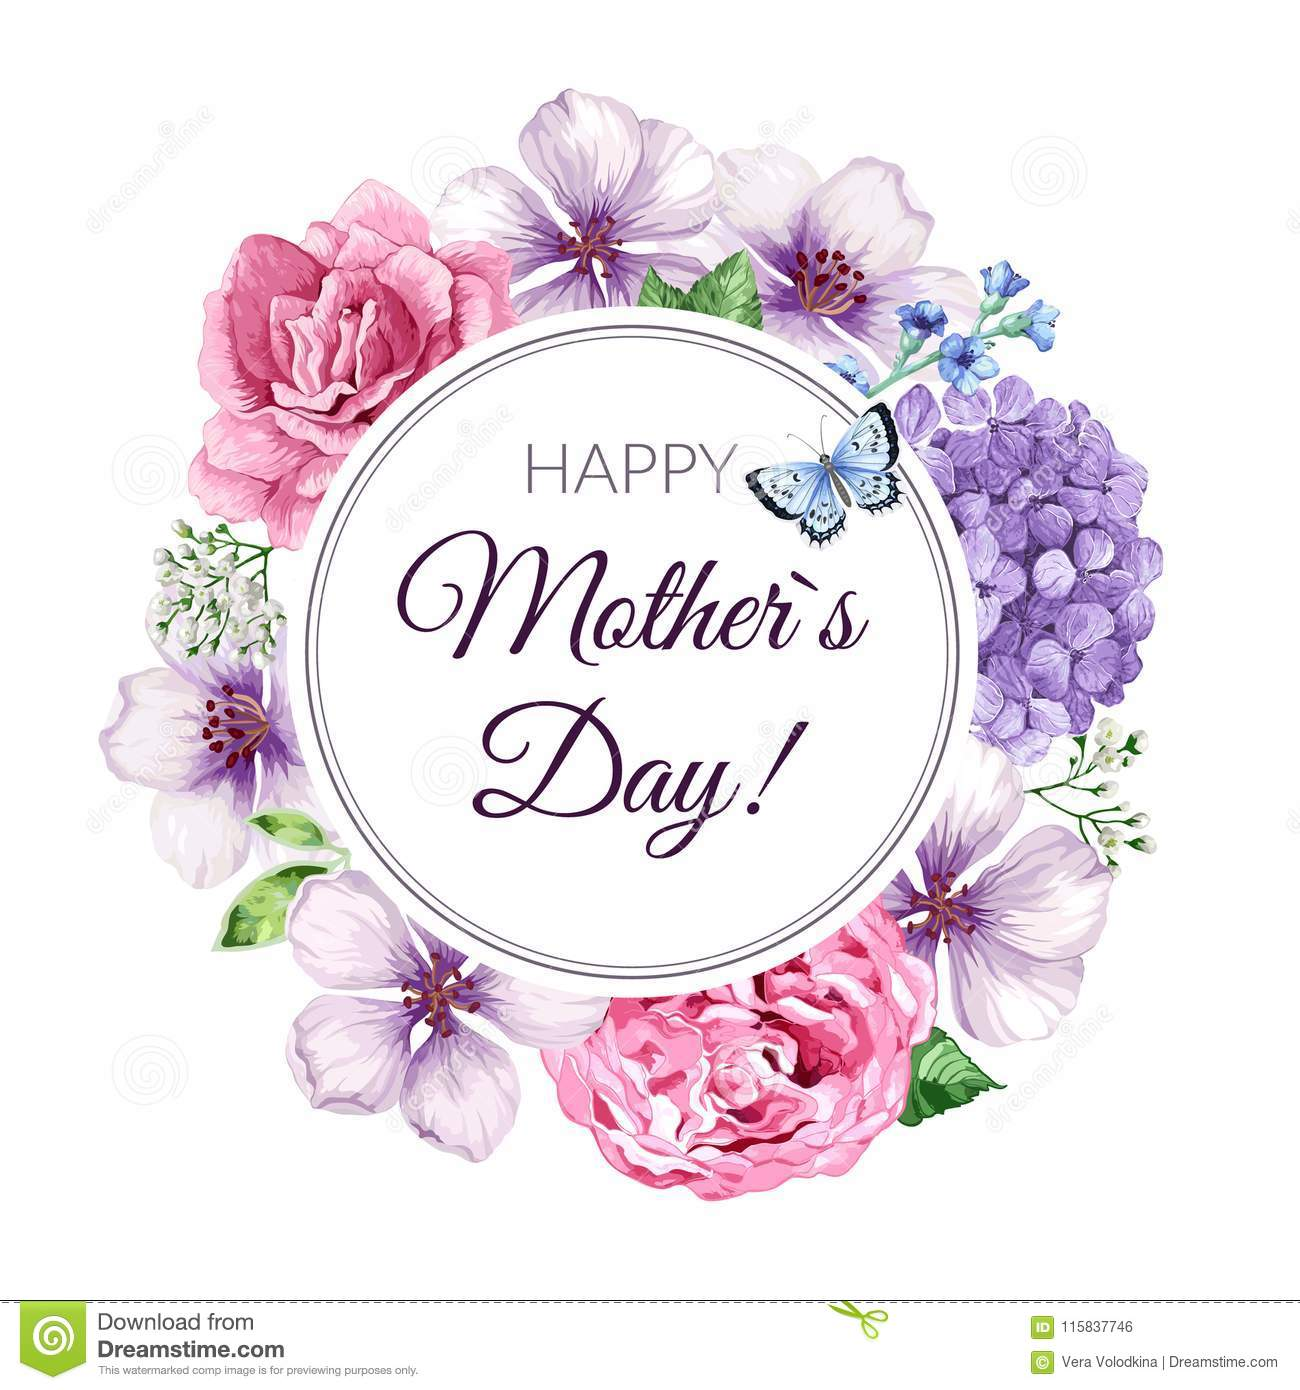 happy mother s day greeting card on floral background